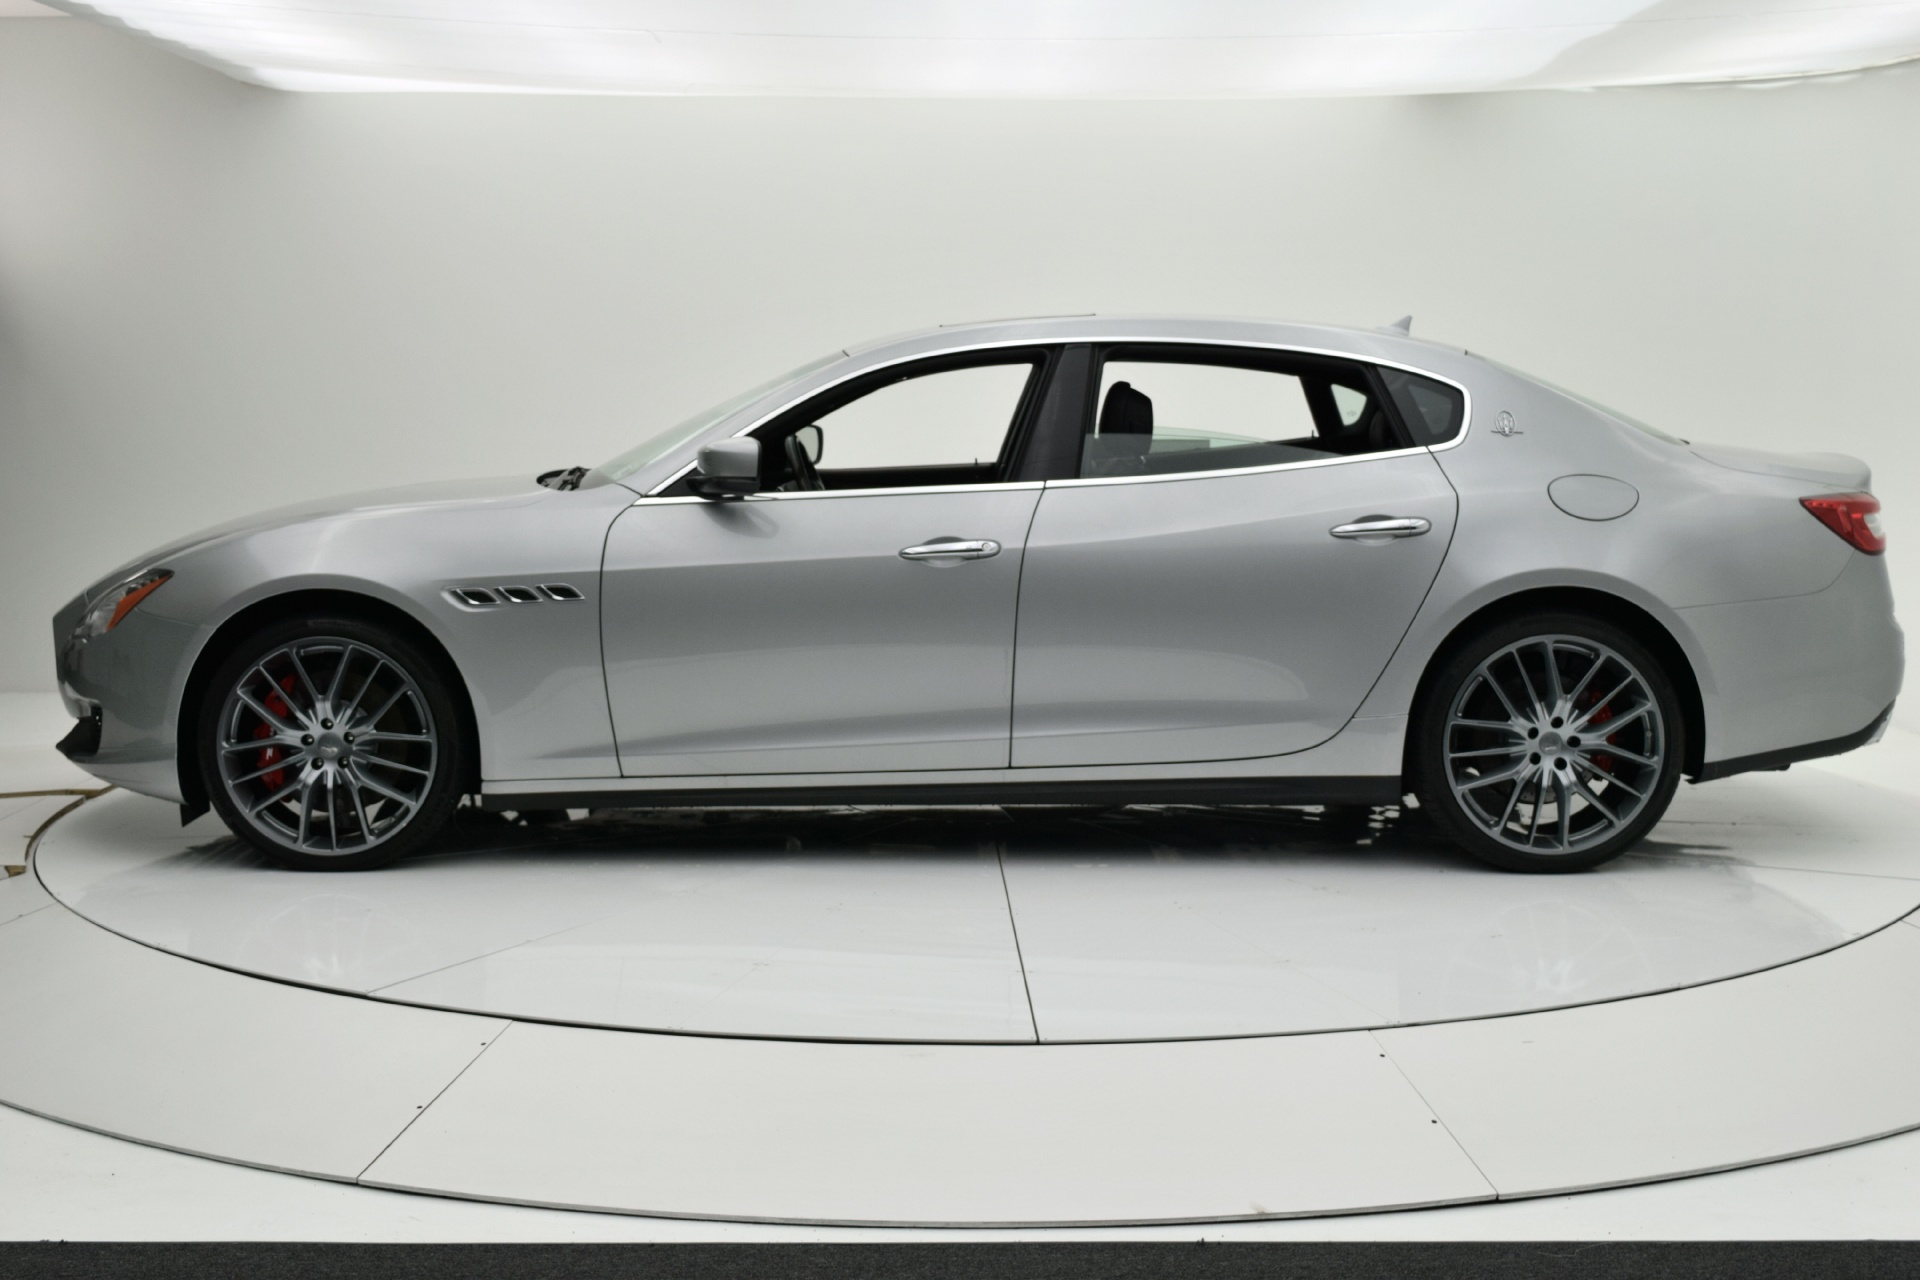 used 2014 maserati quattroporte gts sport gt s for sale. Black Bedroom Furniture Sets. Home Design Ideas